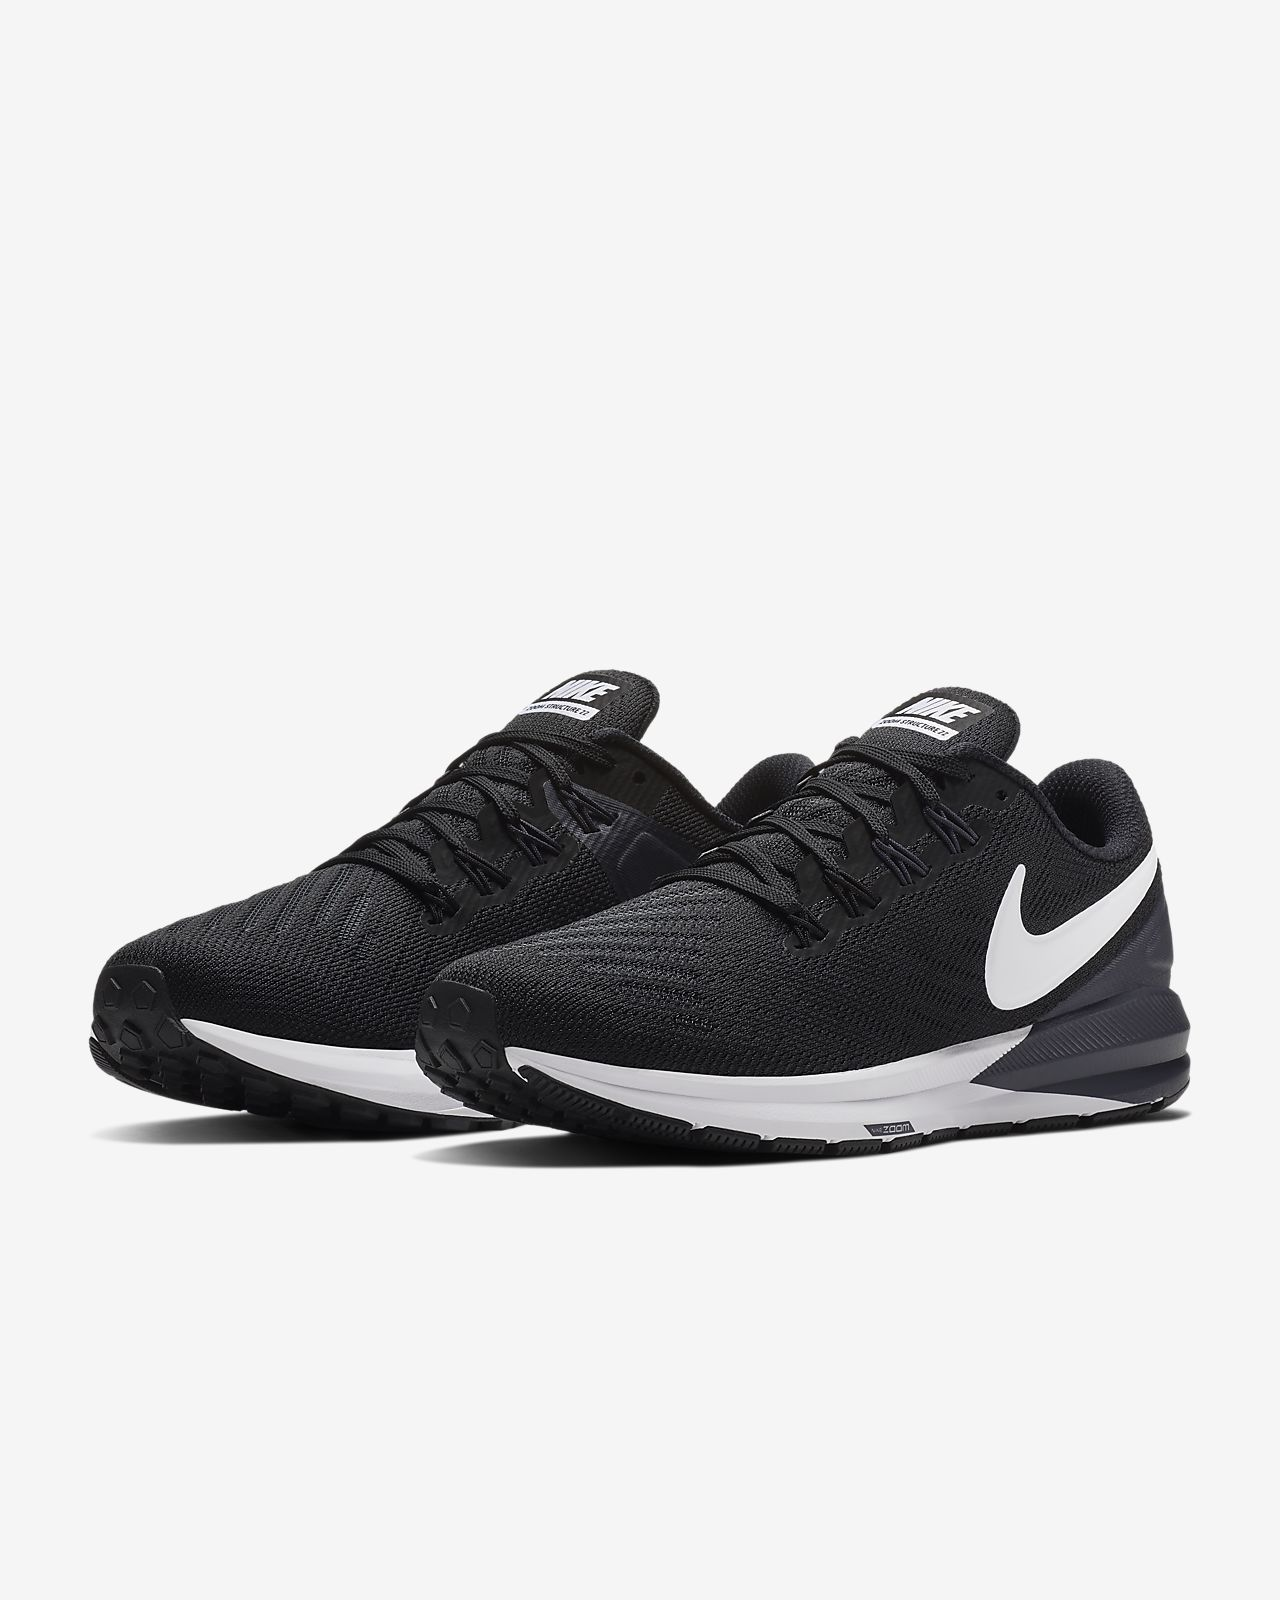 Nike Air Zoom Structure 21 Women's Running Shoe